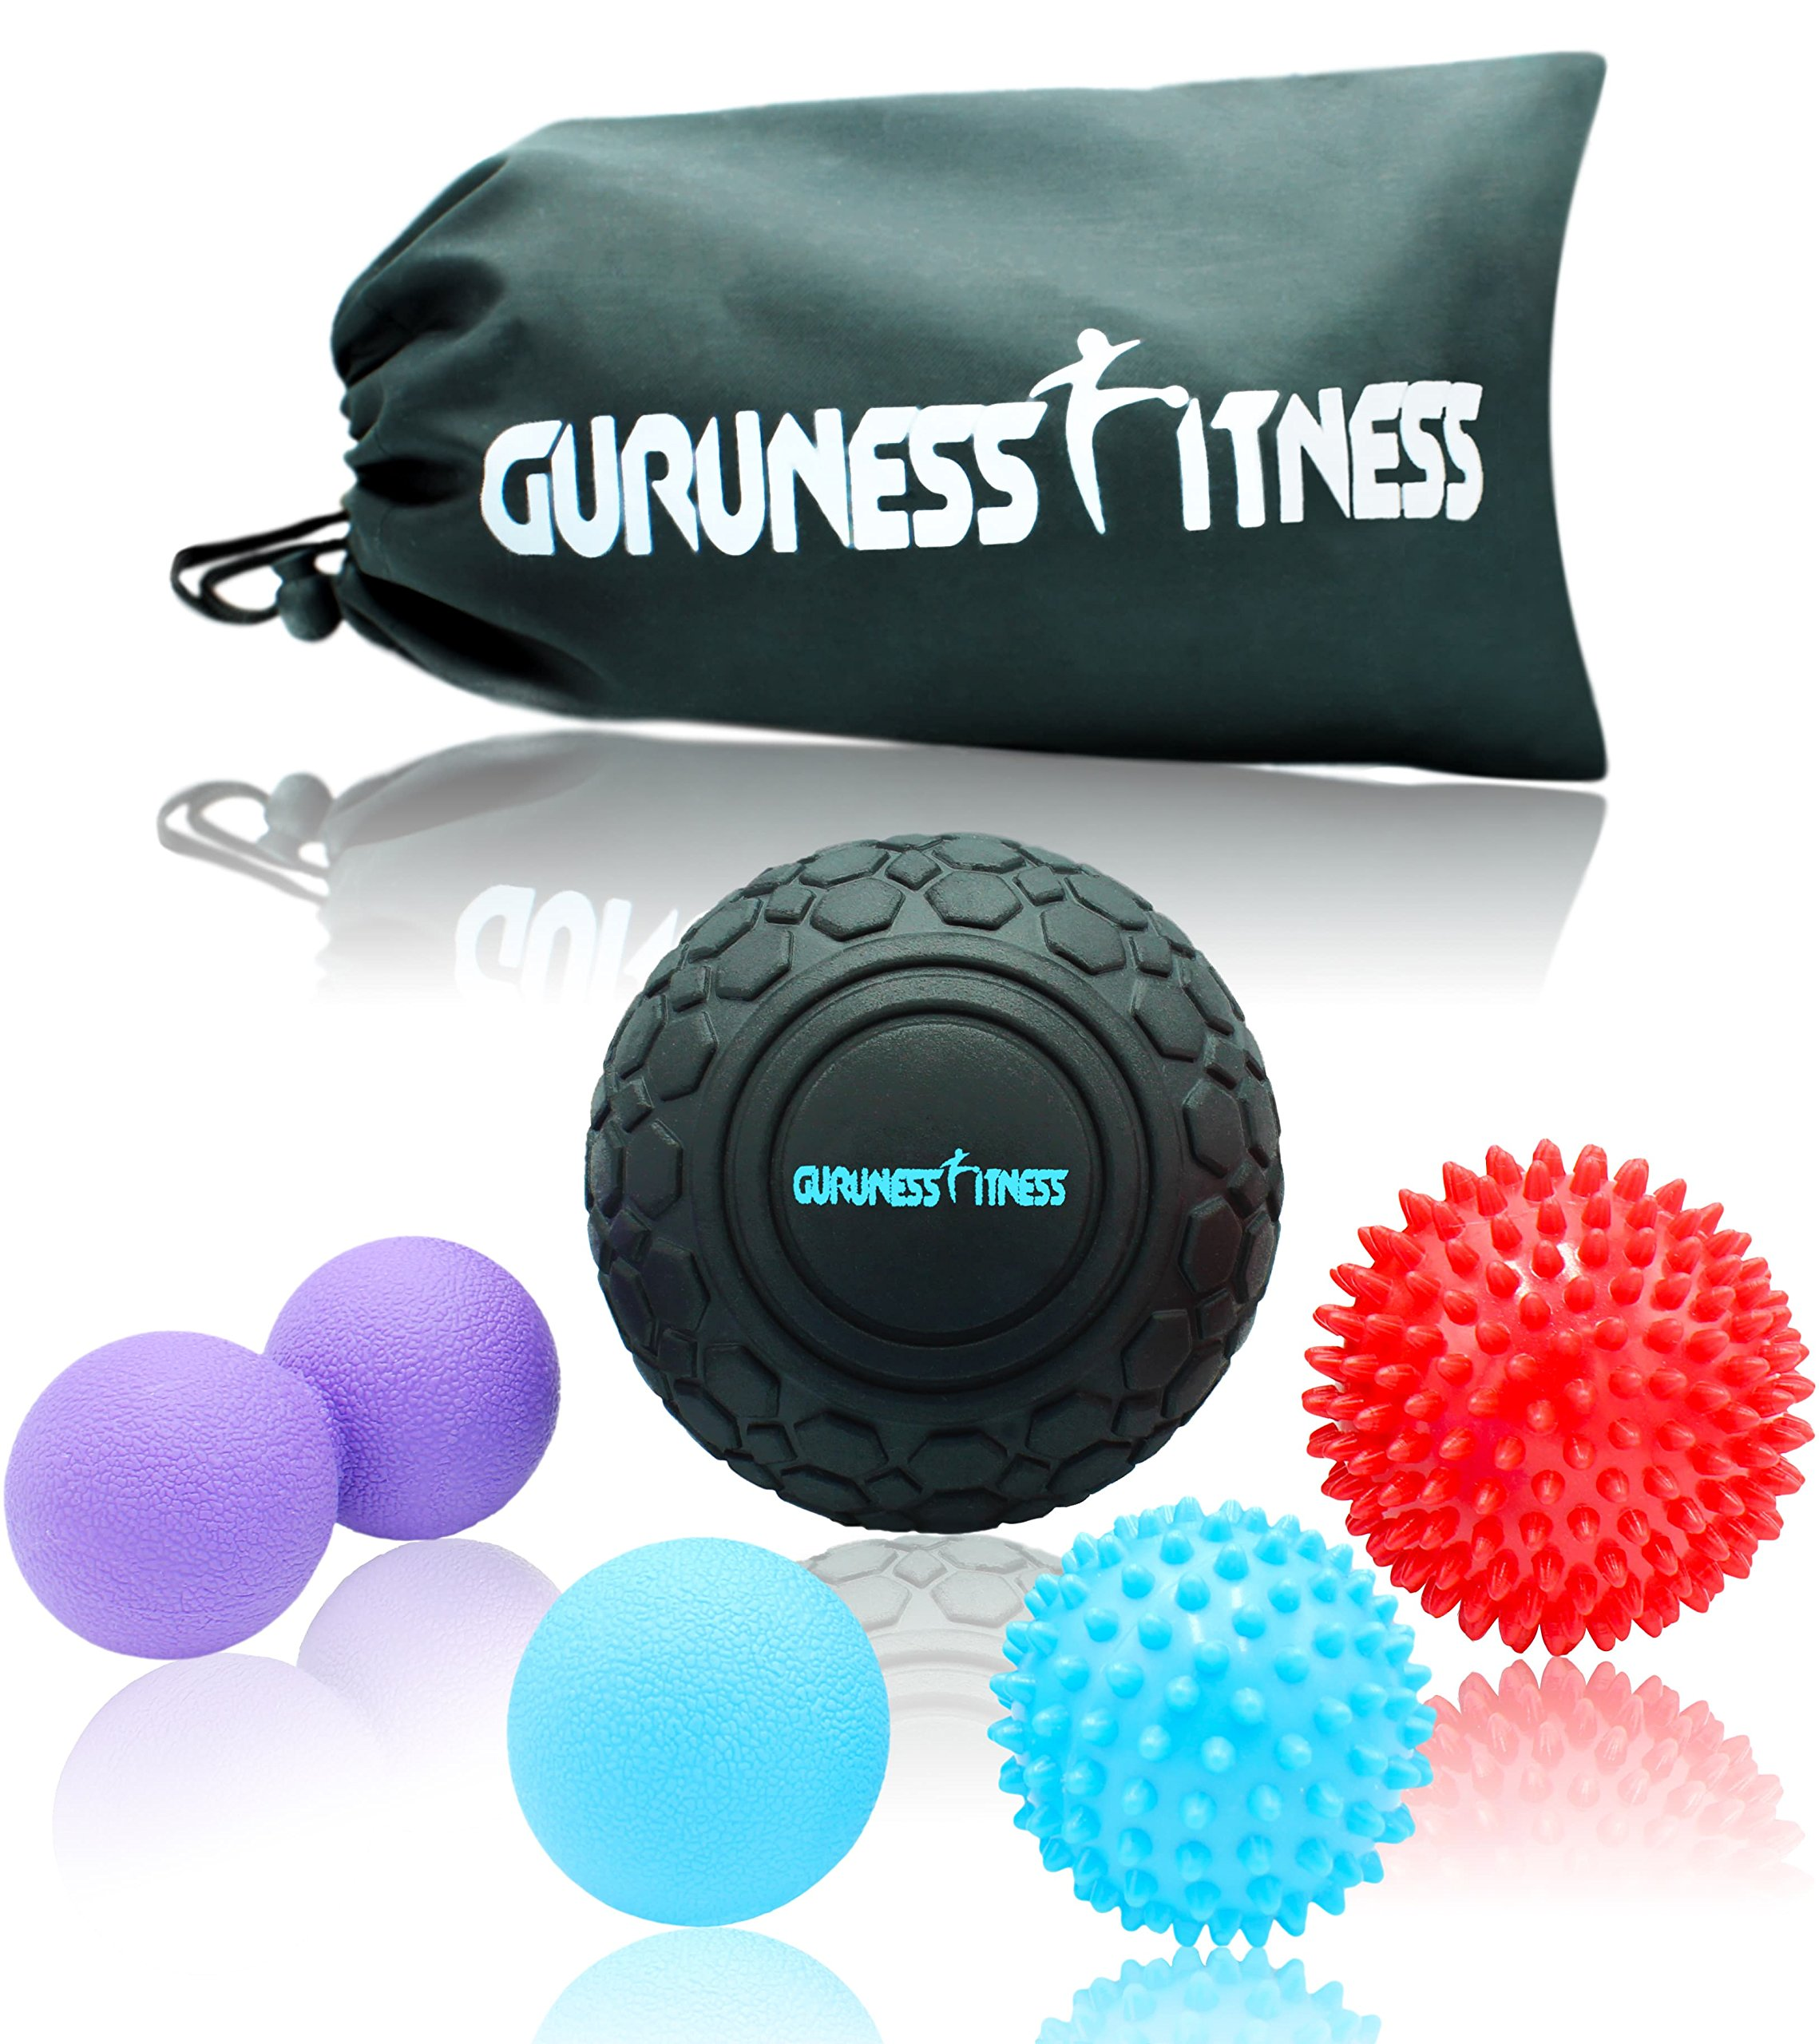 Massage Ball Set for Deep Tissue Recovery, Trigger Point Therapy, Myofascial Release, Muscle Knots, Mobility MOD, Plantar Fasciitis- 5'' Foam Roller Ball, Peanut Double Ball, Spiky Balls, Lacrosse Ball by GURUNESS FITNESS (Image #1)